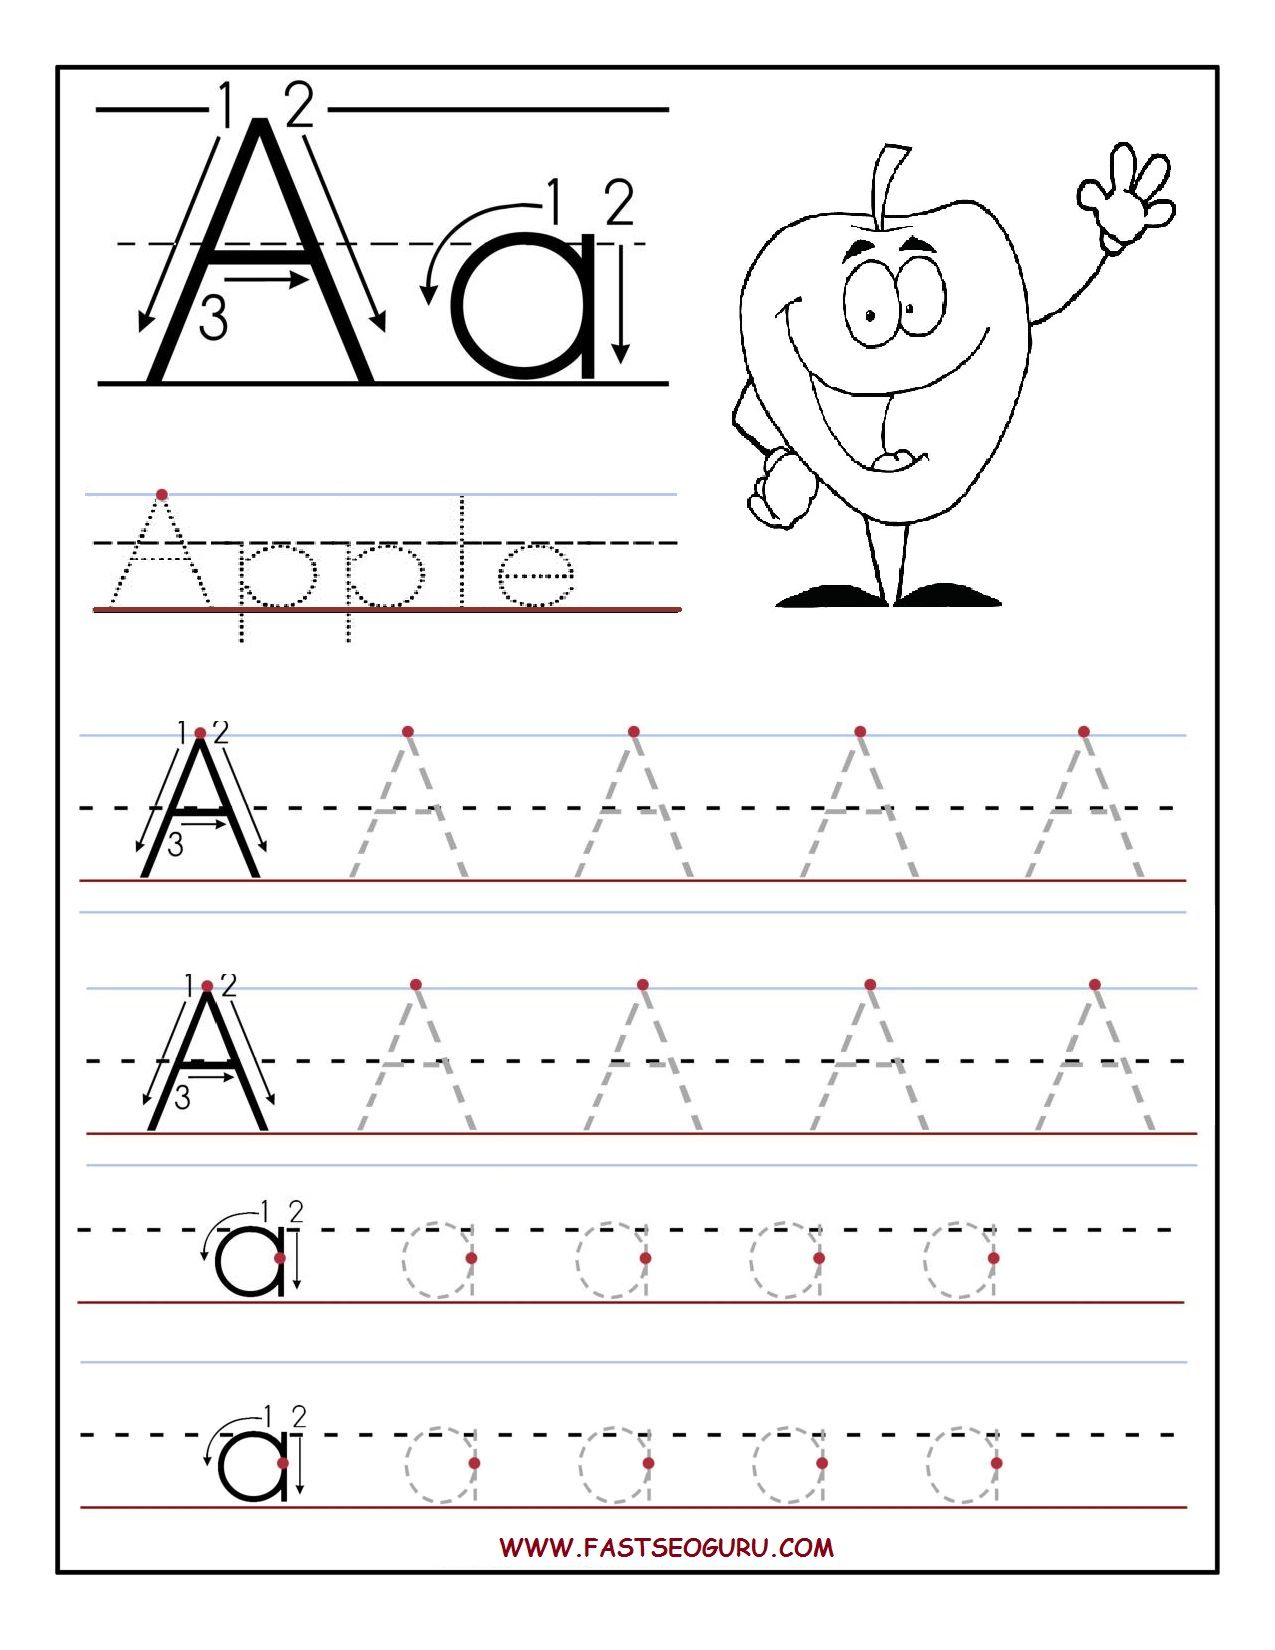 bFreeb bPrintableb letter A tracing bworksheetsb – Printable Alphabet Worksheets